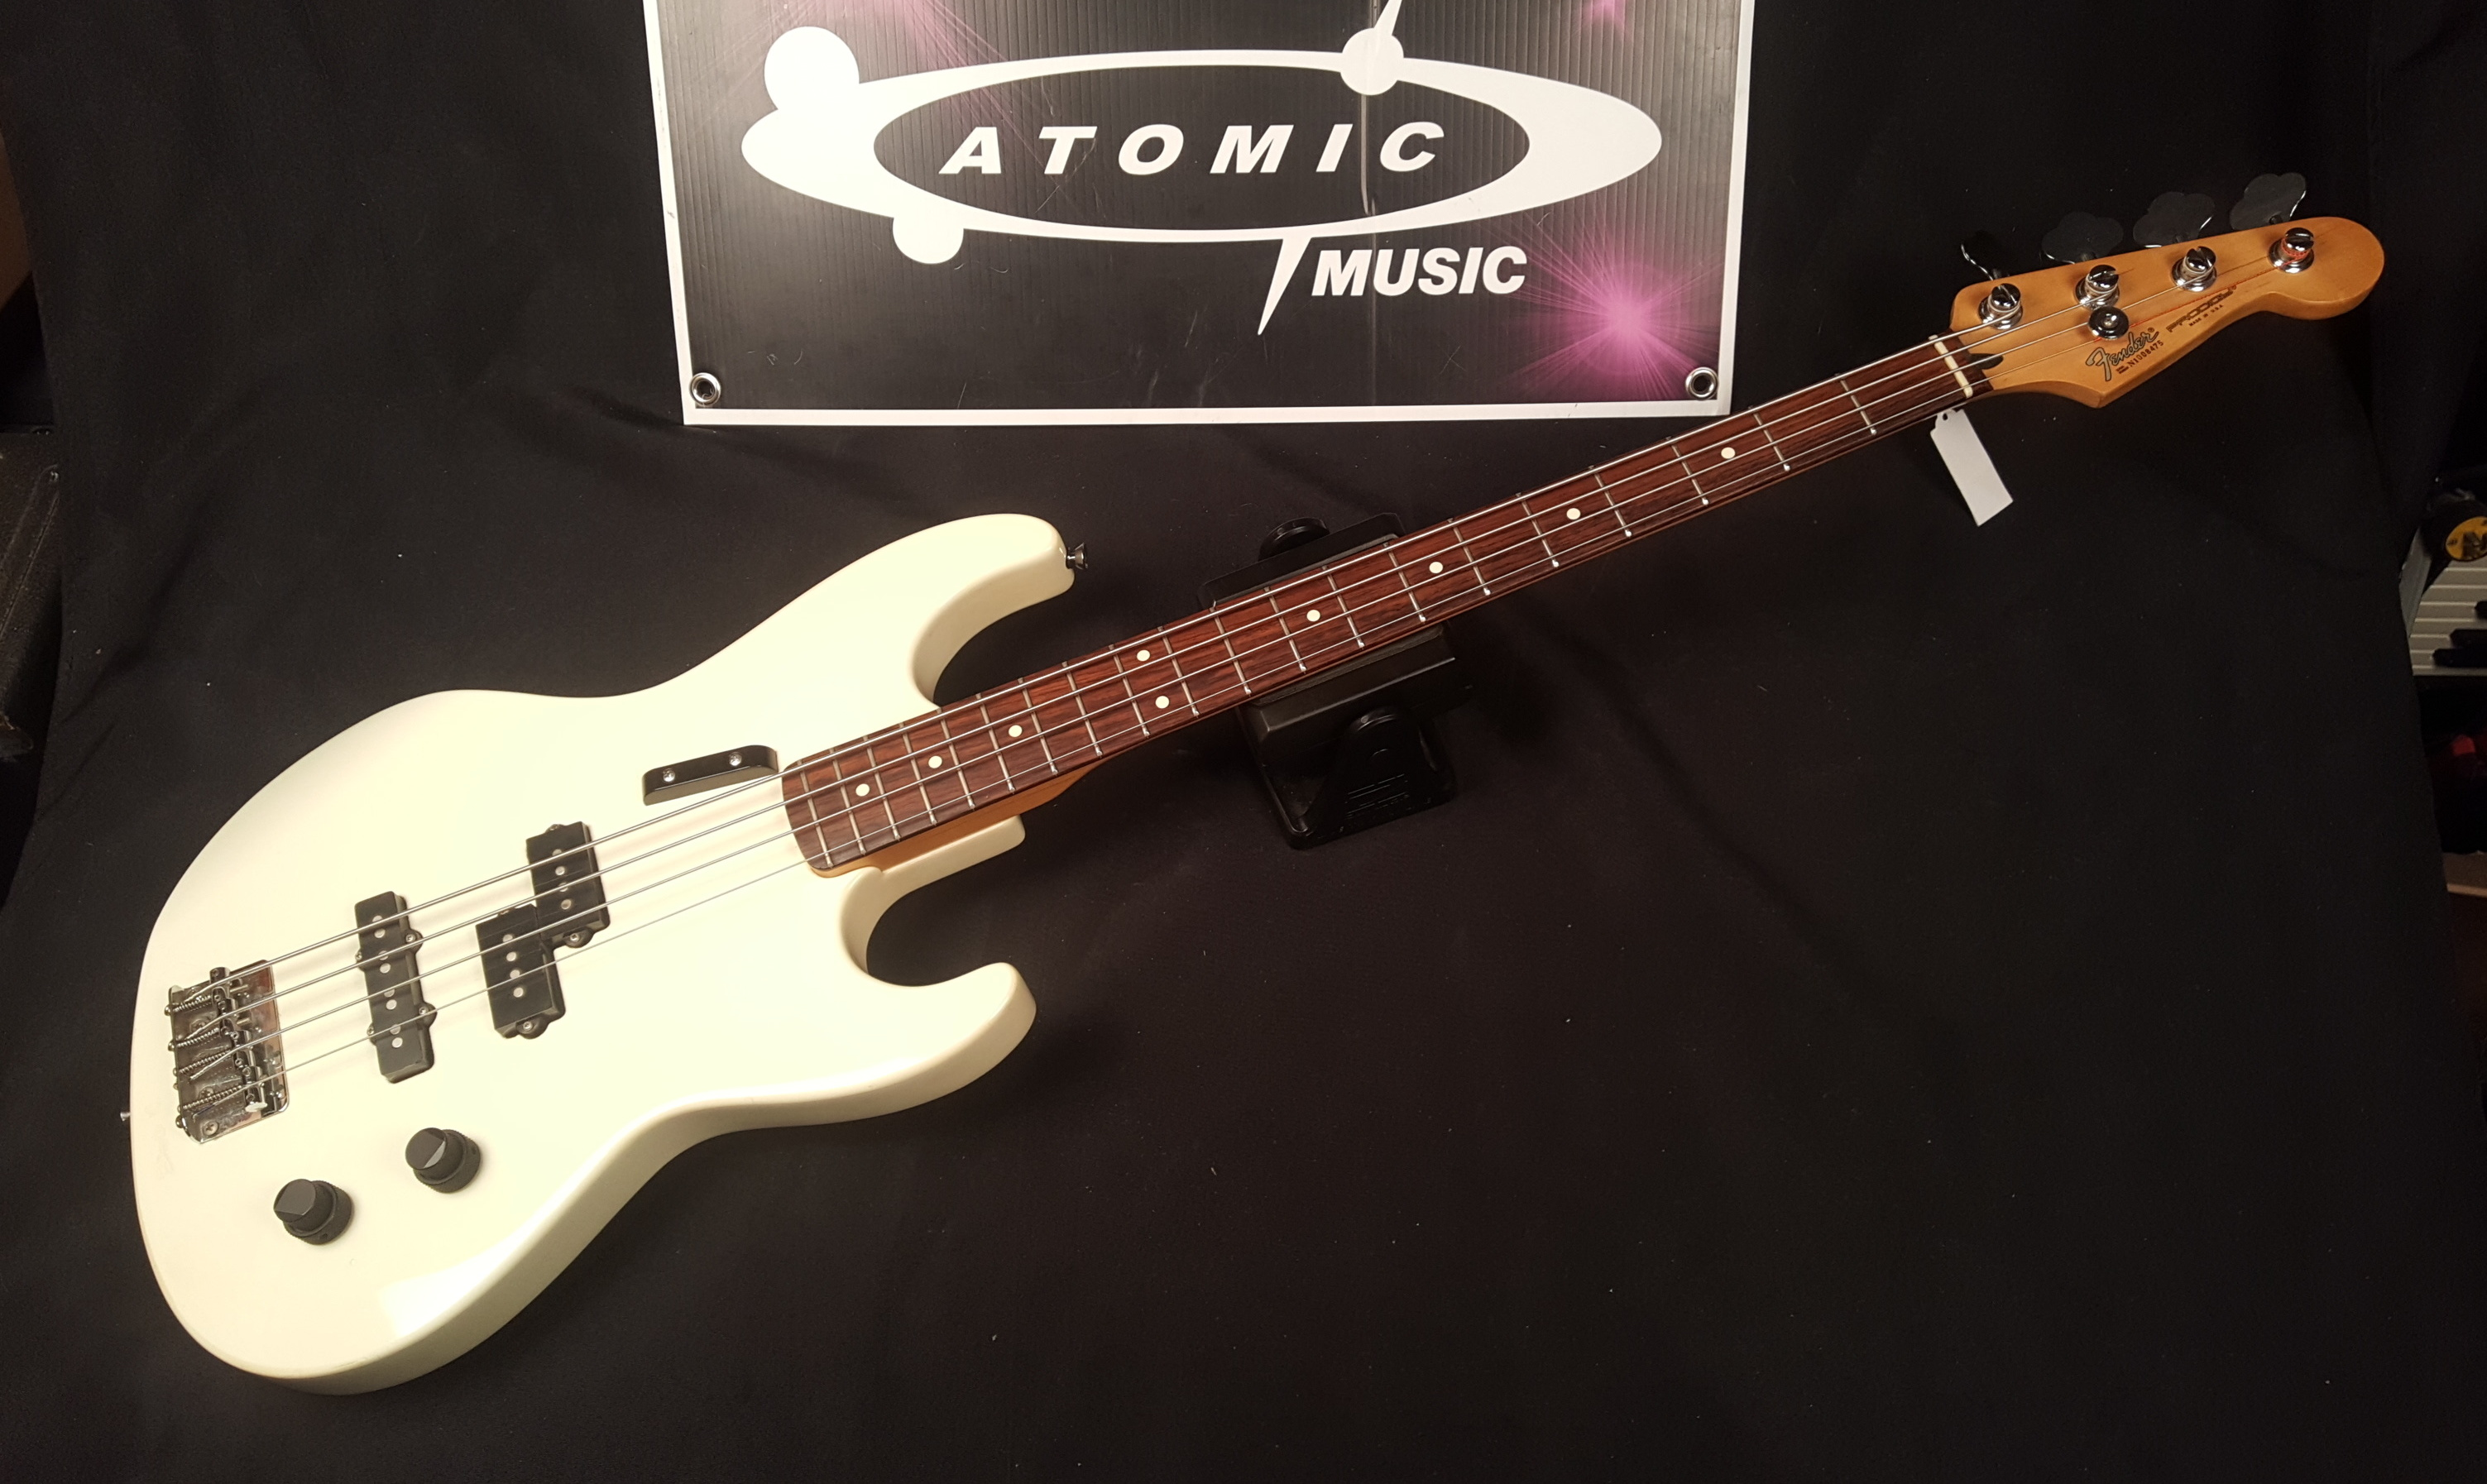 1991 FENDER USA PRODIGY BASS Electric Bass Guitar - WHITE!!